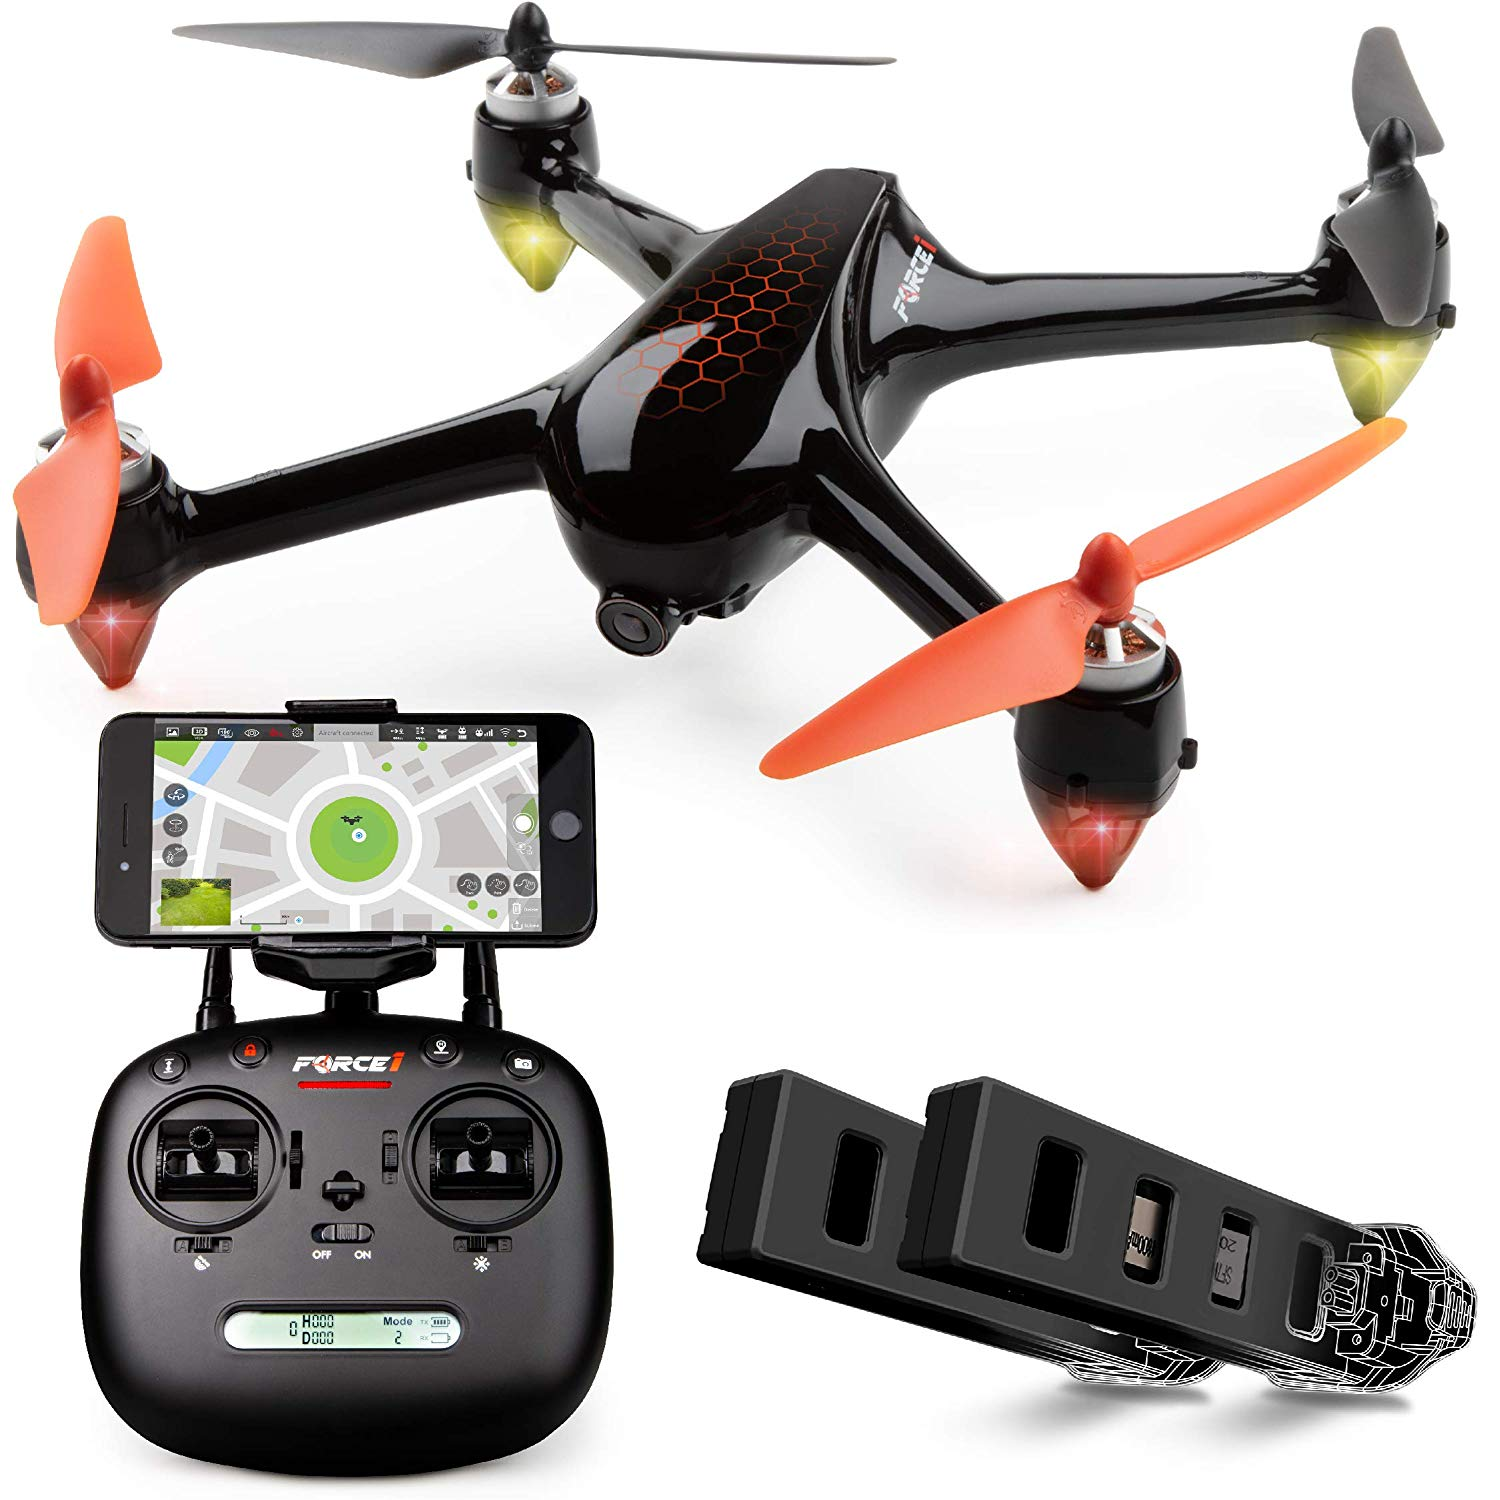 Force1 GPS Drones with Camera